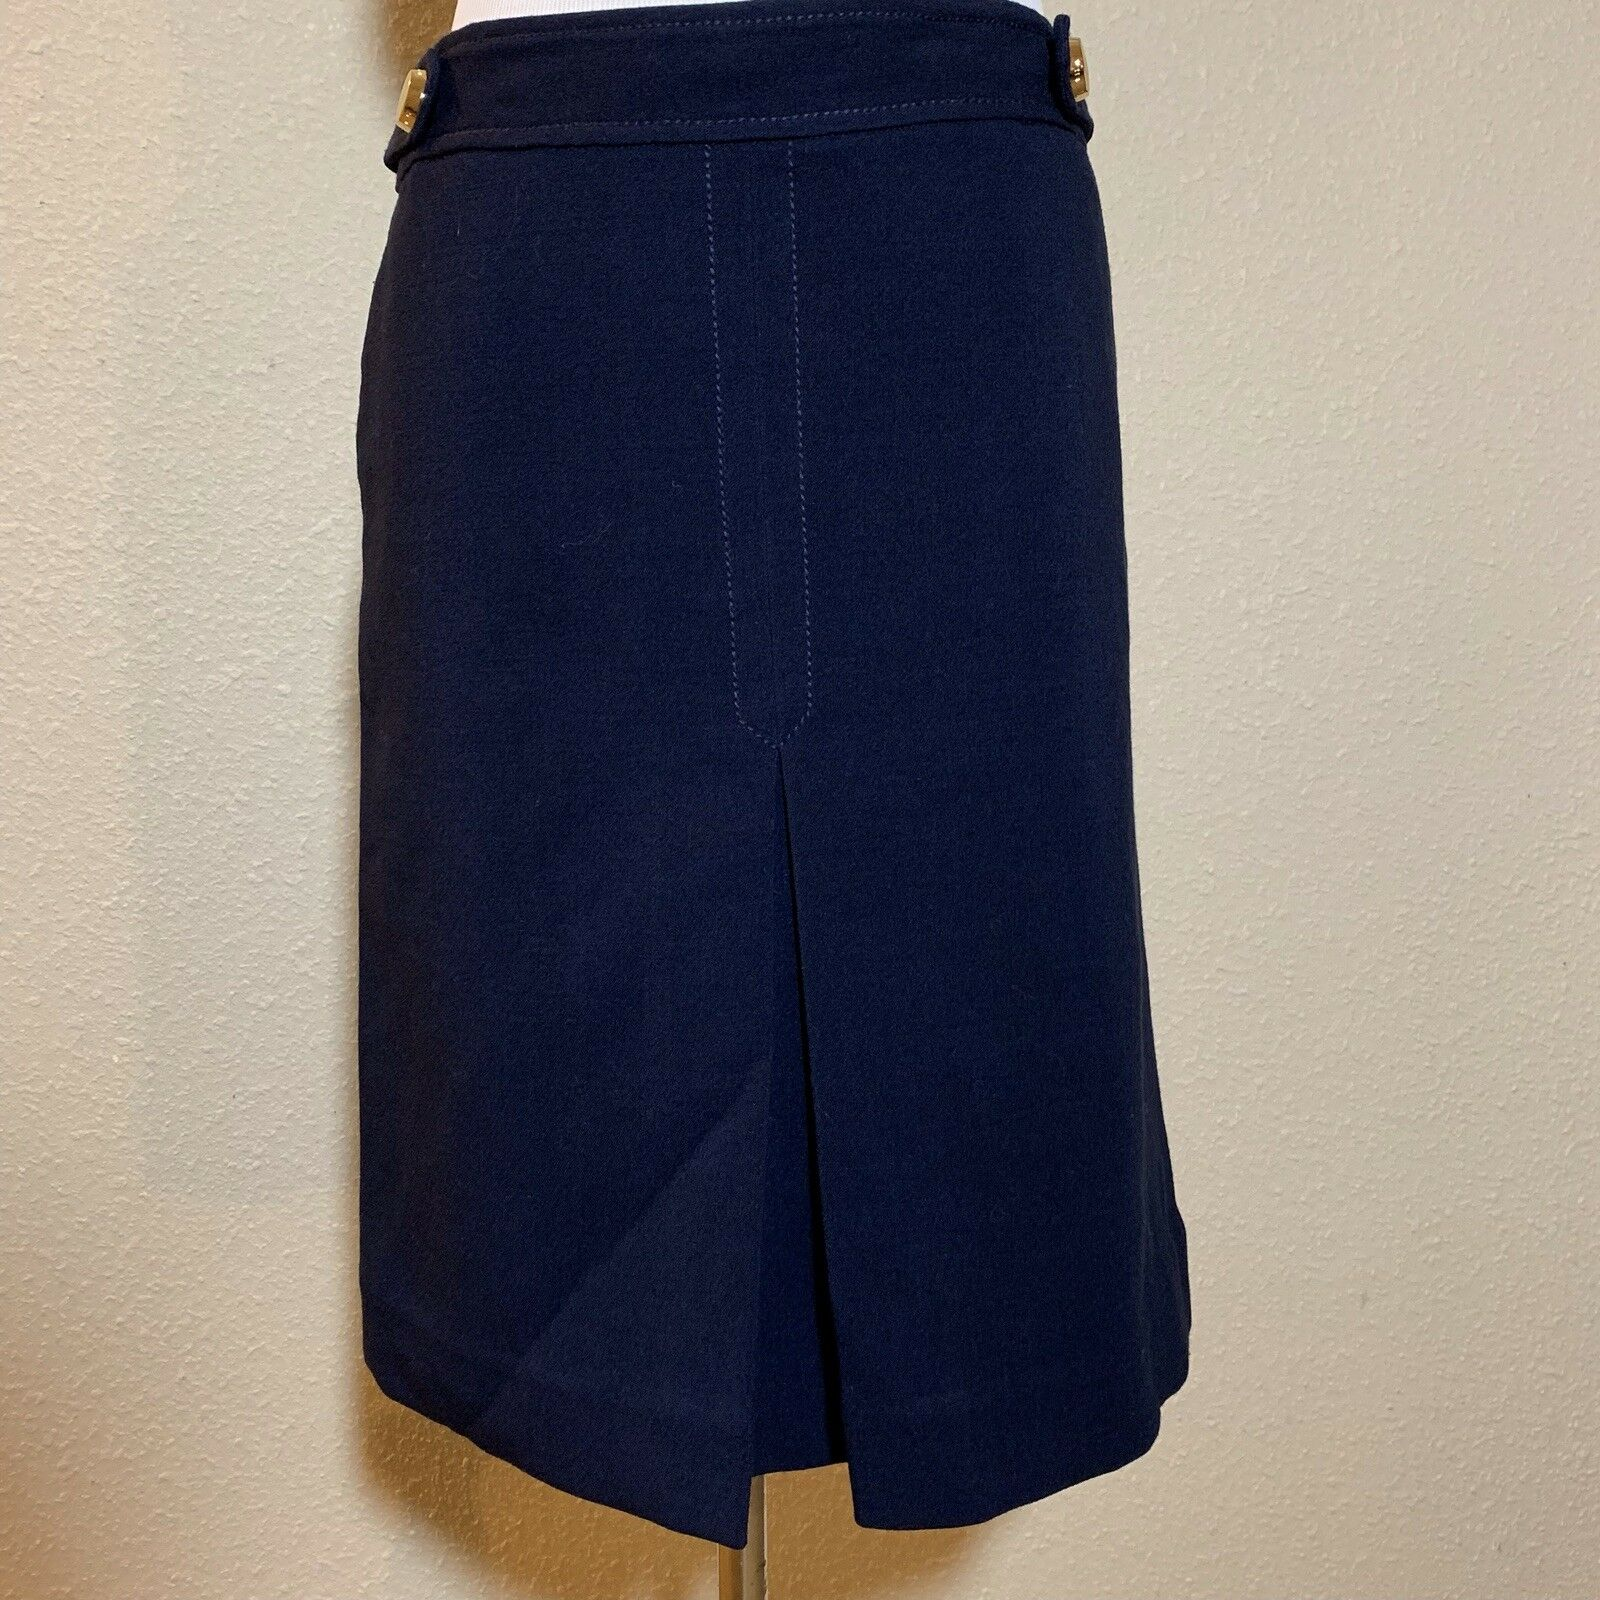 VTG Lilly Pulitzer Navy bluee Front Pleat A-line Skirt Womens Size 8 Ro